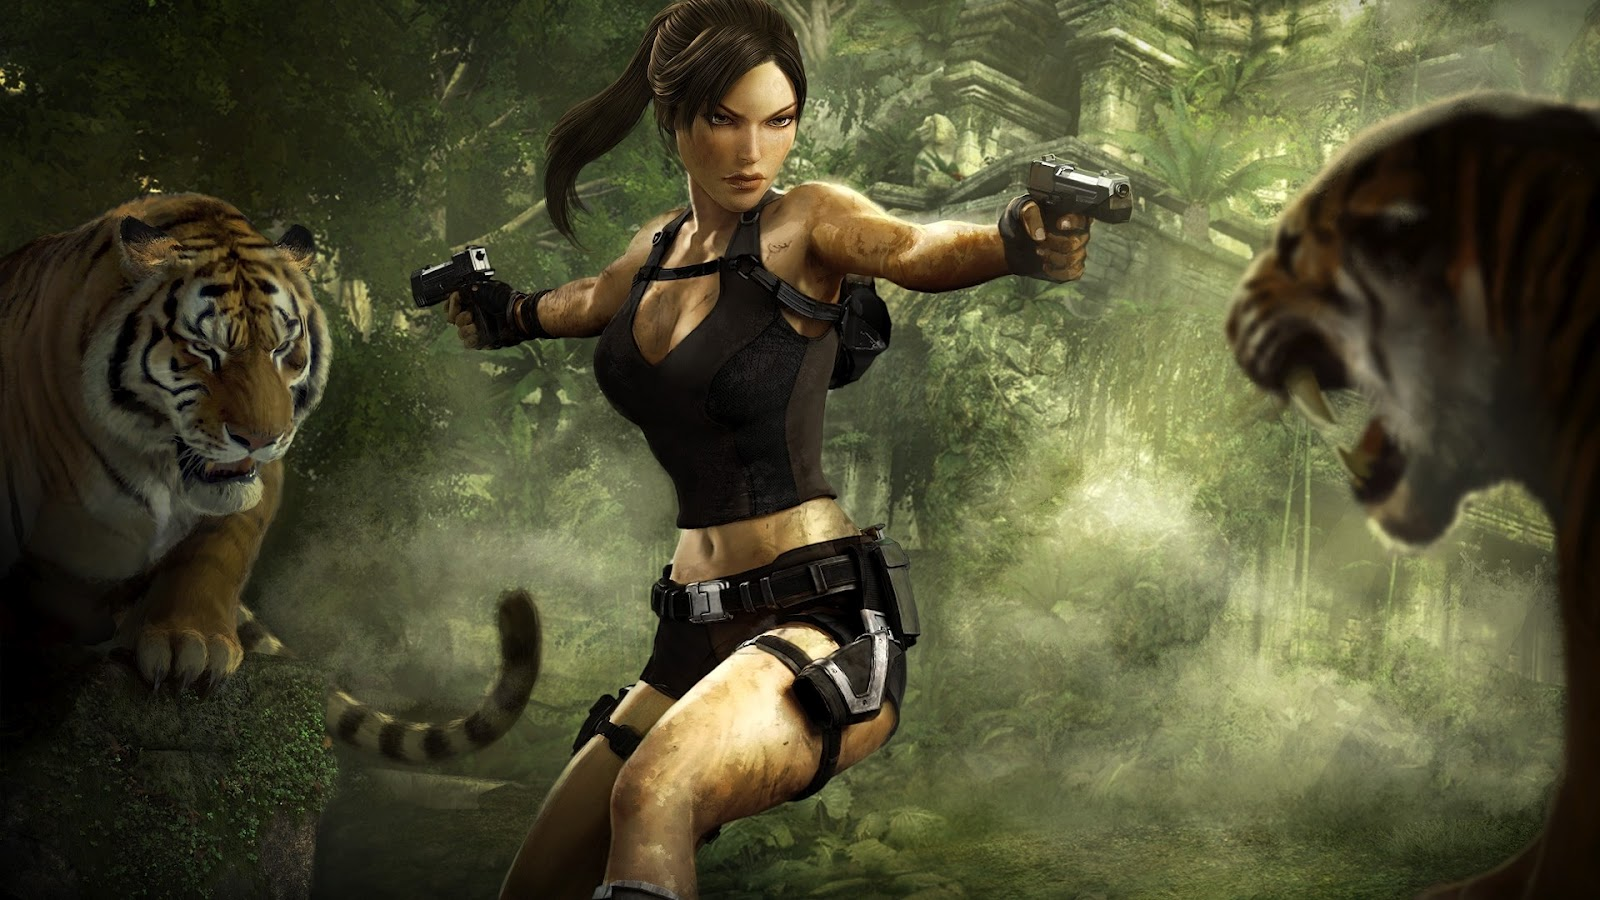 http://2.bp.blogspot.com/-fxSyqGIEY5E/T0Yn_ZhKjOI/AAAAAAAAAtE/q-YlG9JiZeo/s1600/Tom_Raider_Lara_Croft_vs_Tigers_in_Jungle_HD_Wallpaper-gWb.jpg